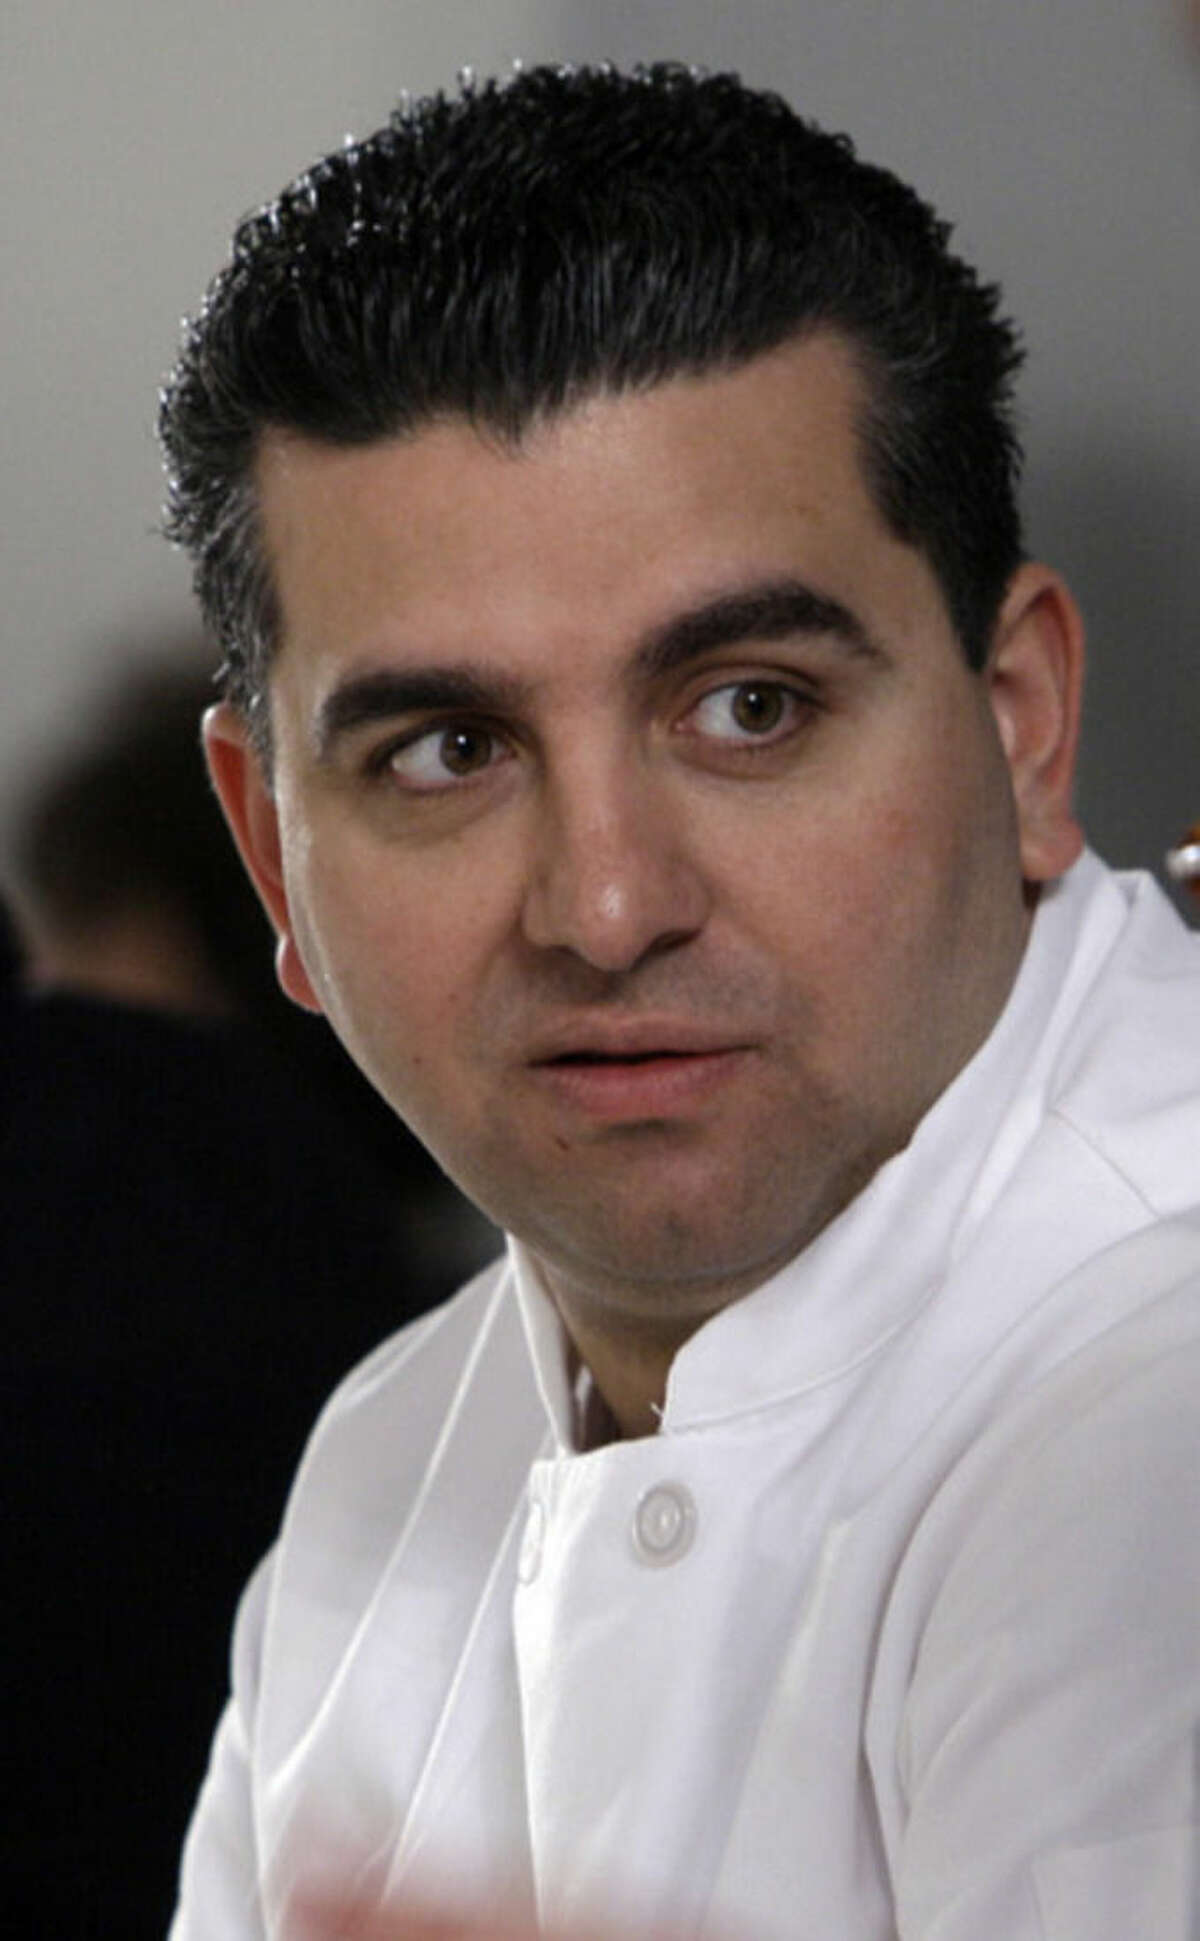 FILE - In this Feb. 17, 2011 file photo, Buddy Valastro attends the presentation of the fall 2011 collection of designer Isaac Mizrahi during Fashion Week in New York. The New York Police Department says